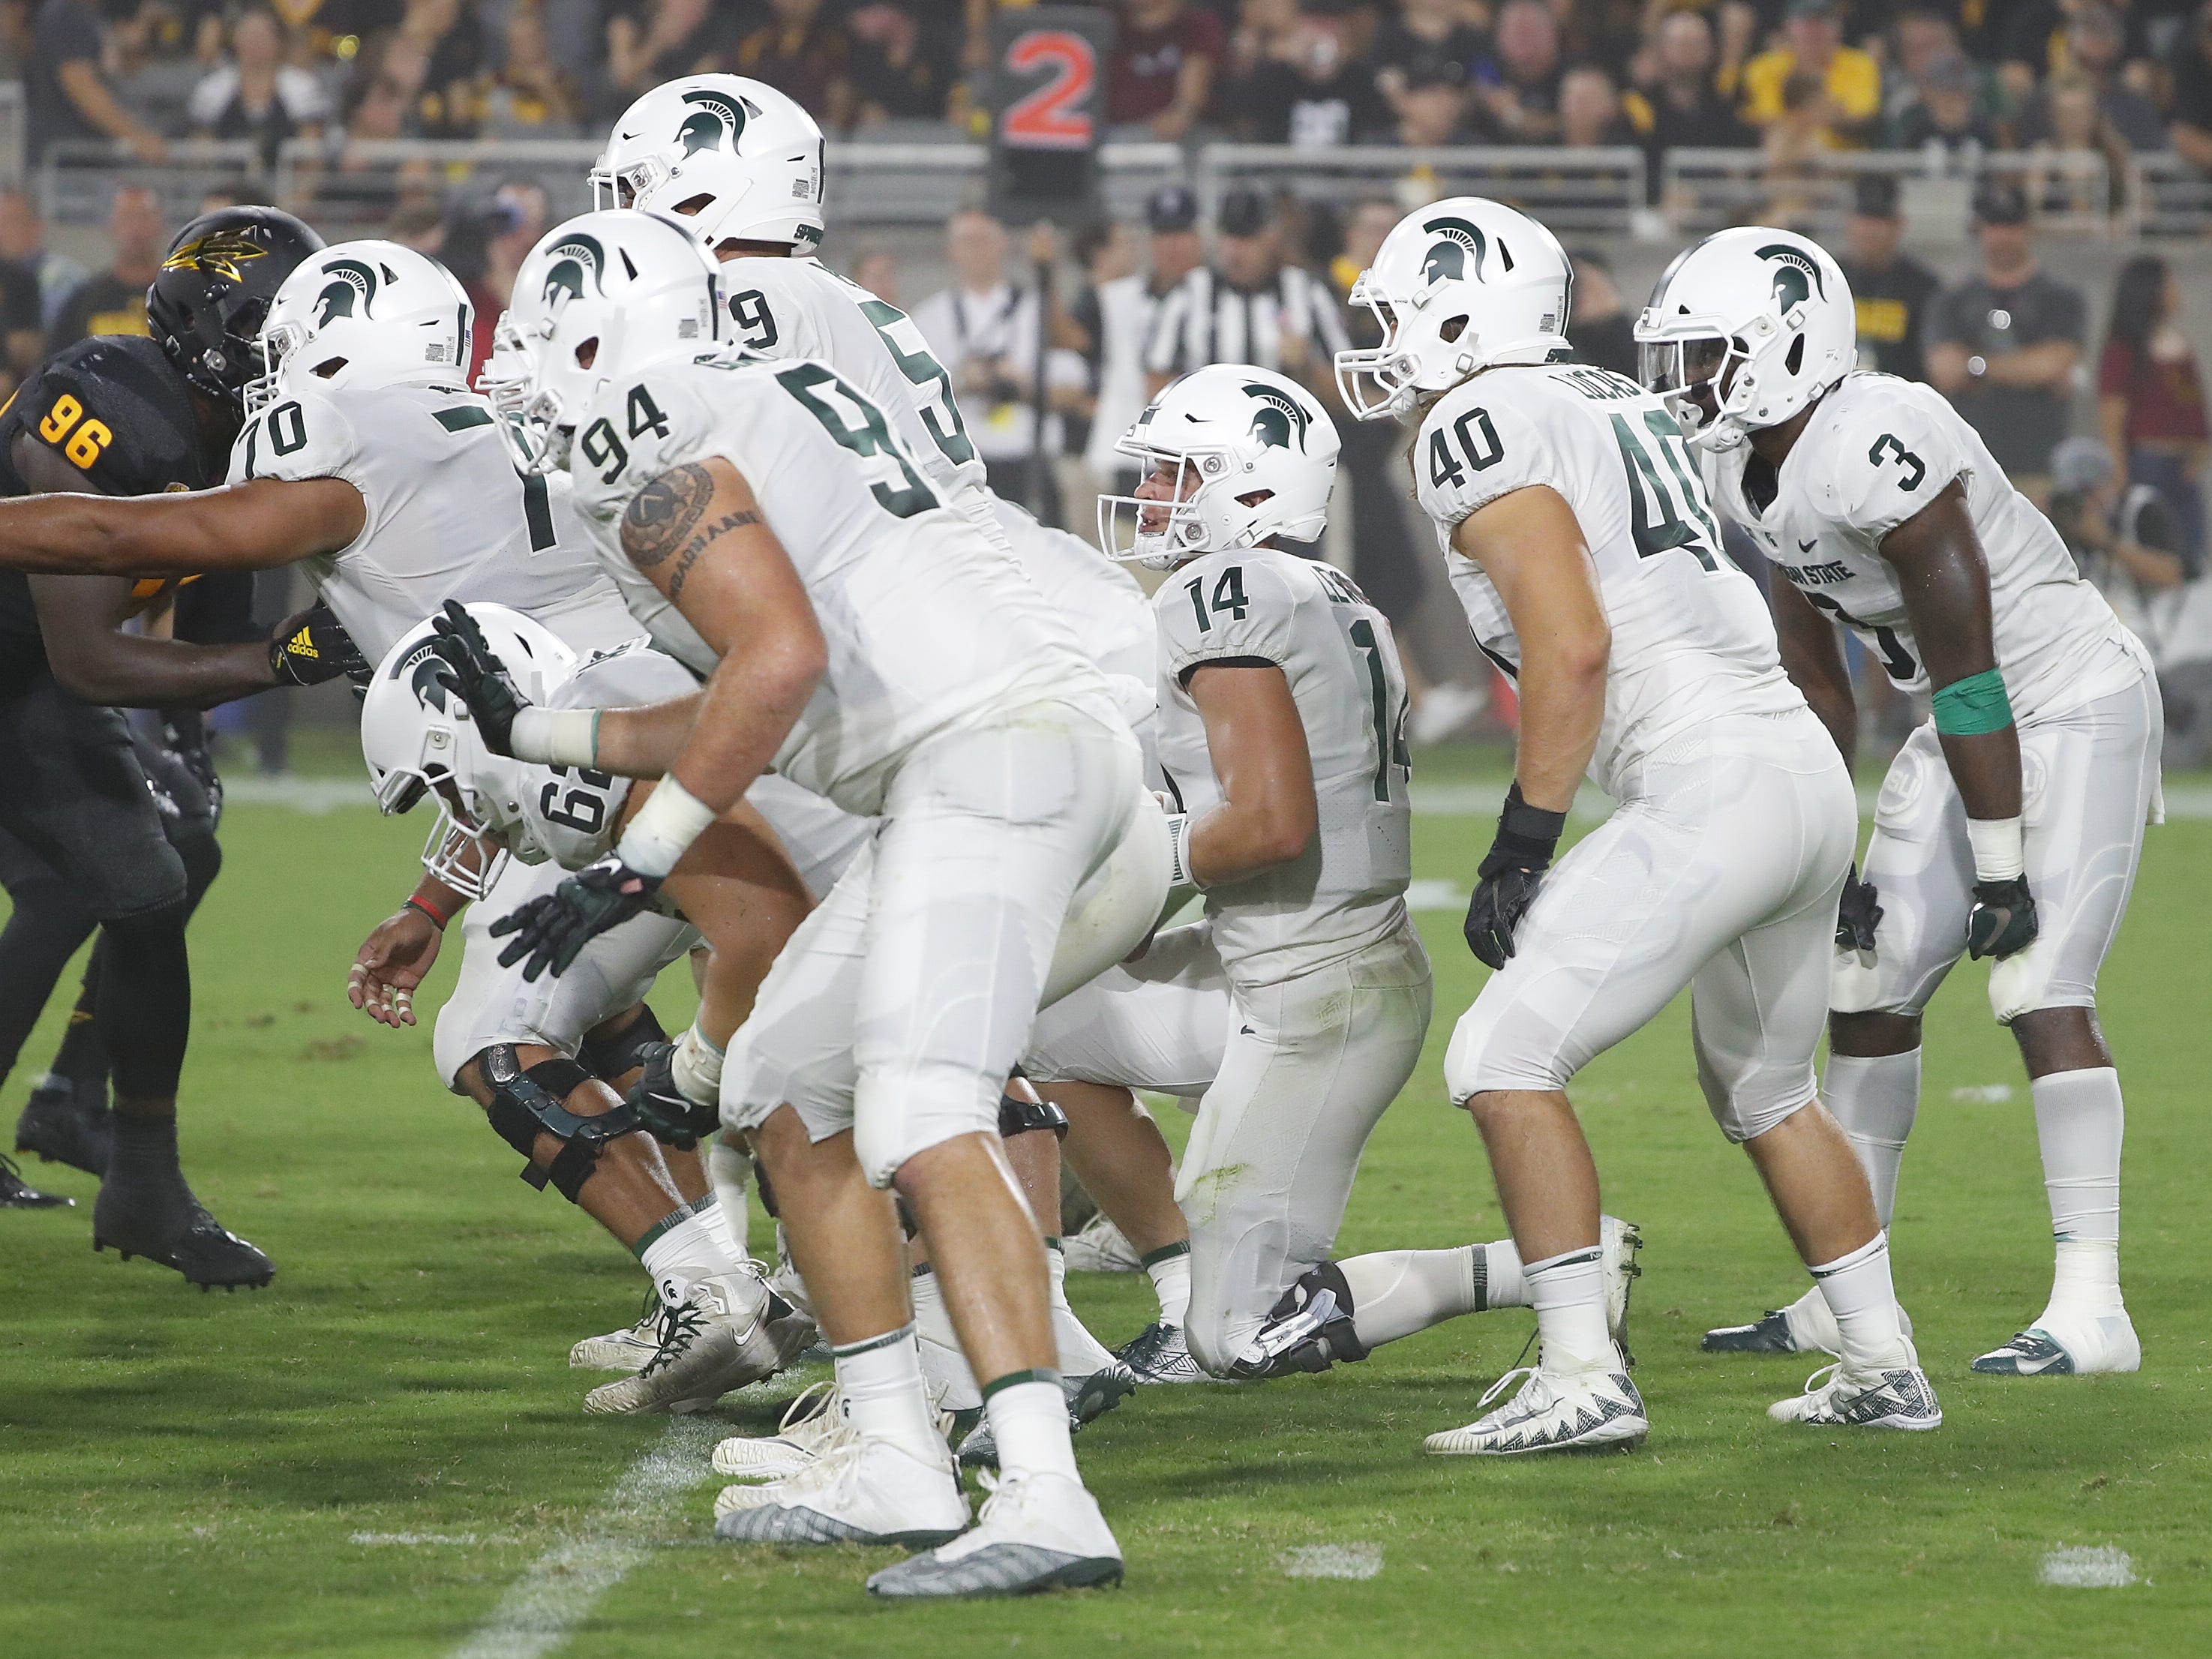 Michigan State kneels to end the first half against Arizona State at Sun Devil Stadium in Tempe, Ariz. on Sept. 8, 2018.